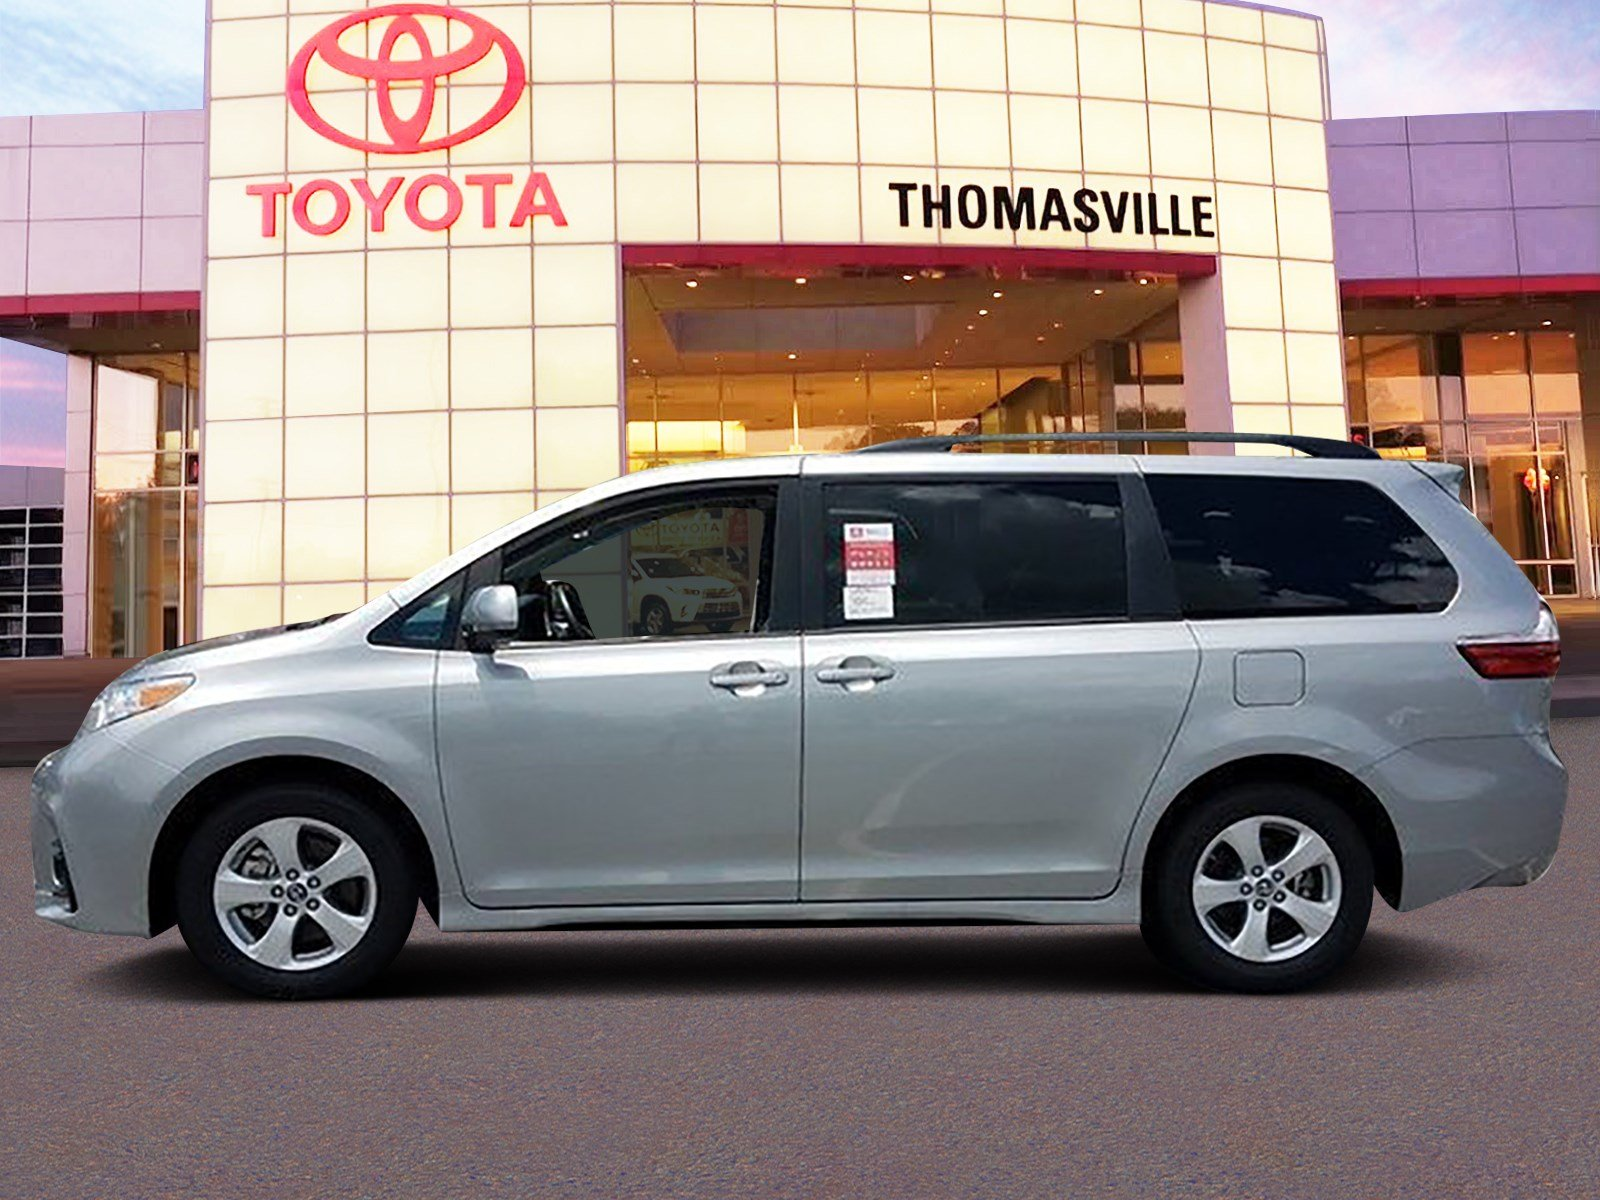 Toyota Sienna Service Manual: Rear wheel alignment